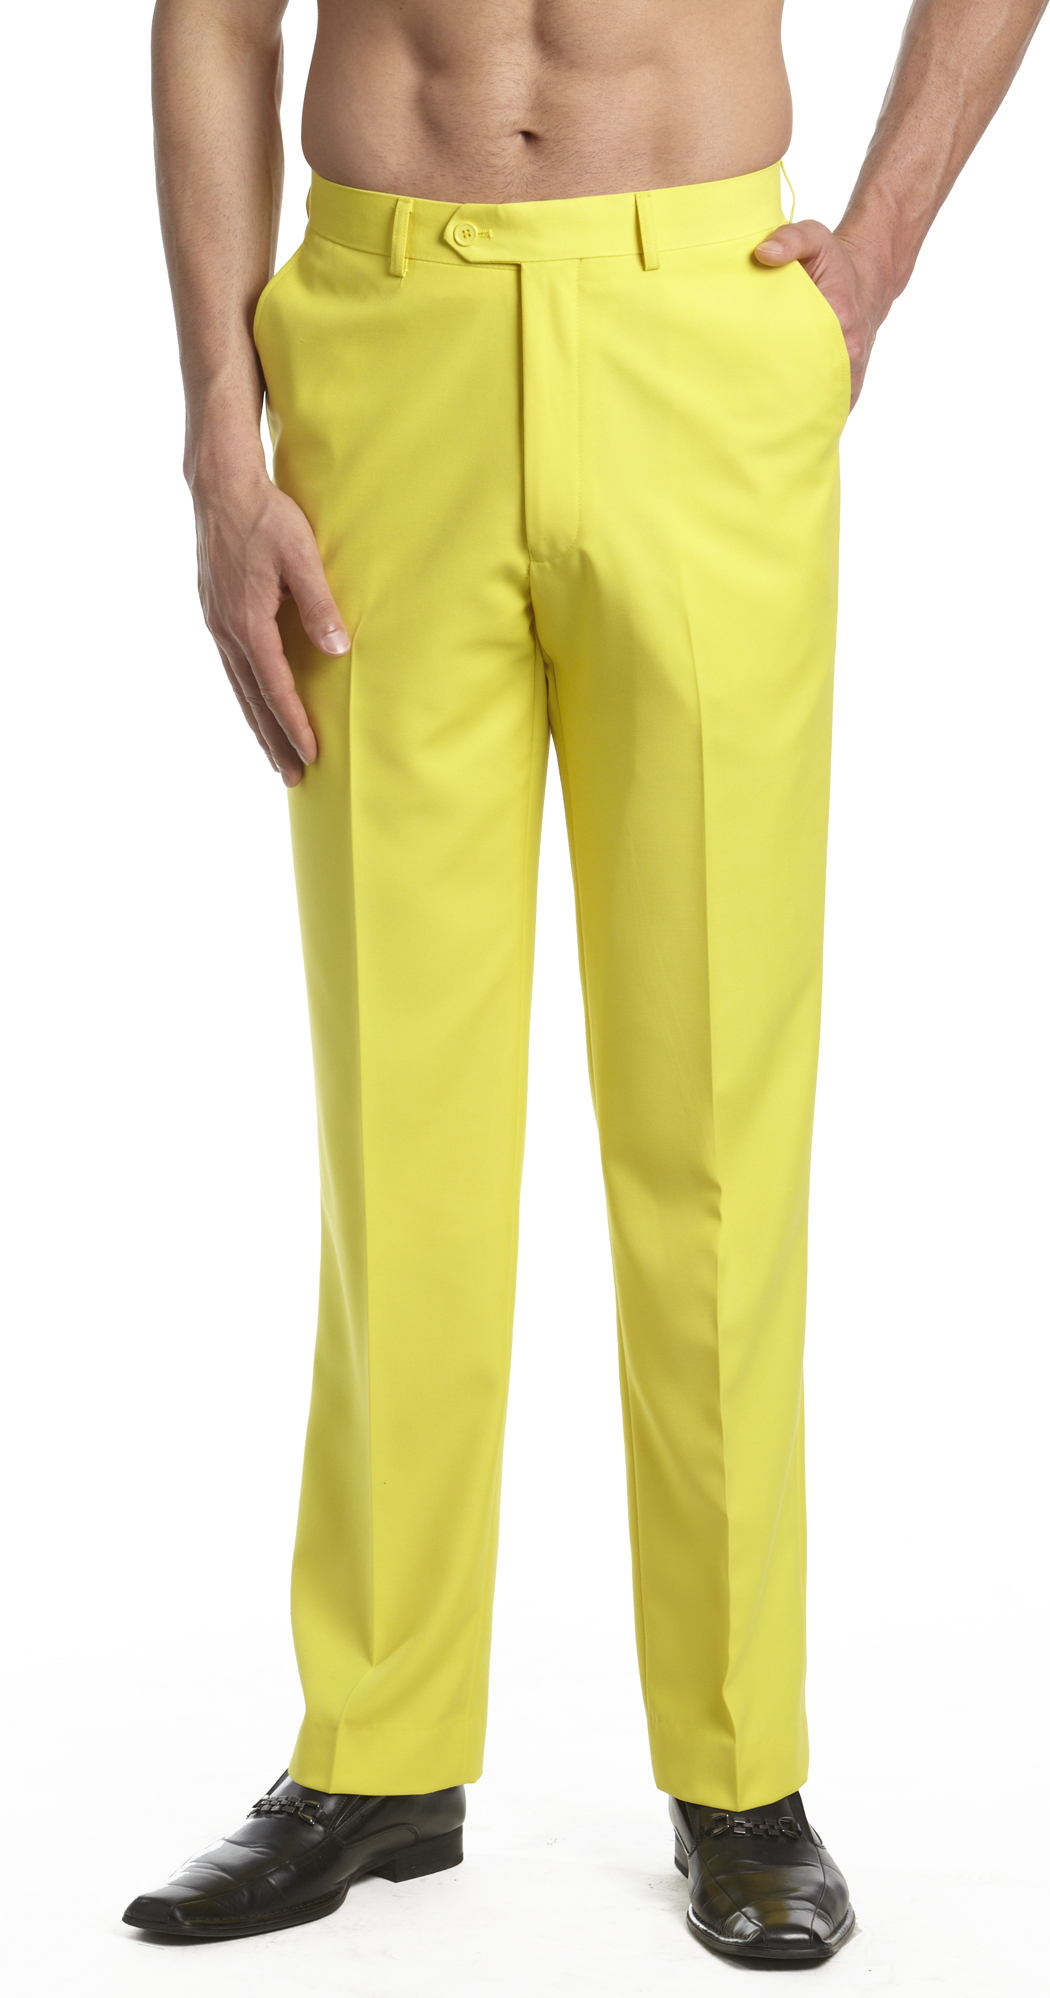 Mens Pants at Macy's come in all styles and sizes. Shop Men's Pants: Dress Pants, Chinos, Khakis, pants and more at Macy's! Macy's Presents: The Edit- A curated mix of fashion and inspiration Check It Out. Free Shipping with $75 purchase + Free Store Pickup. Contiguous US. Yellow .